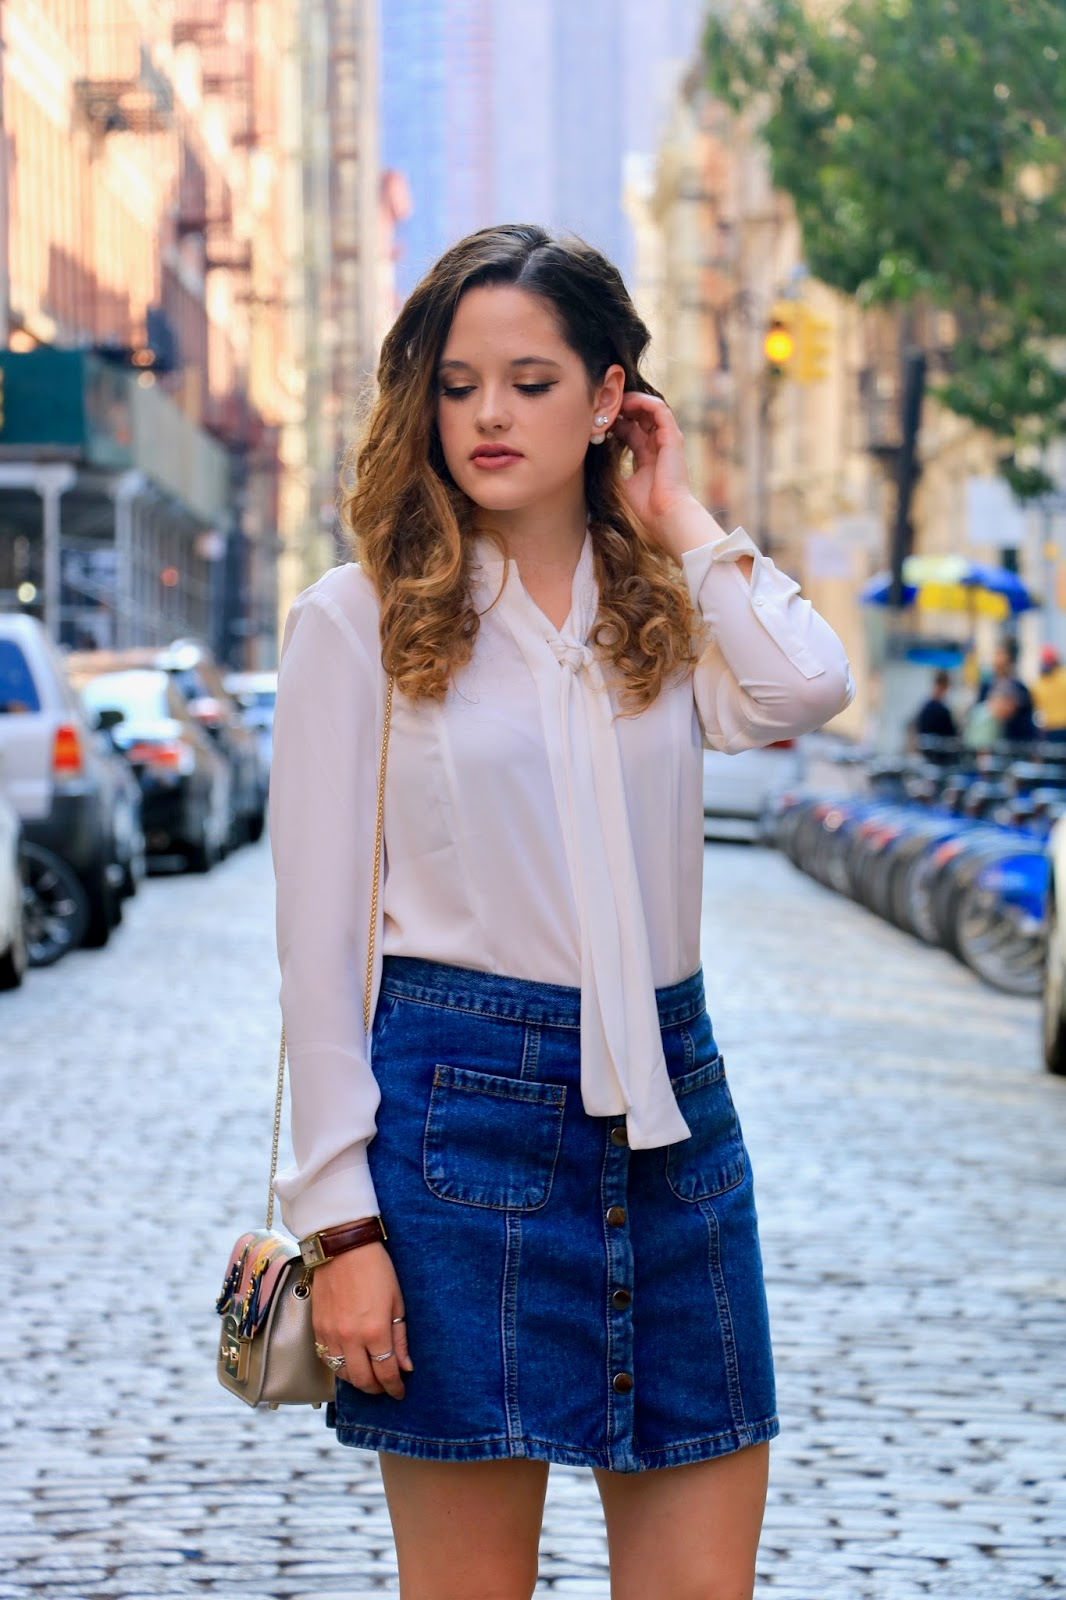 Fashion blogger Kathleen Harper showing how to wear a denim skirt